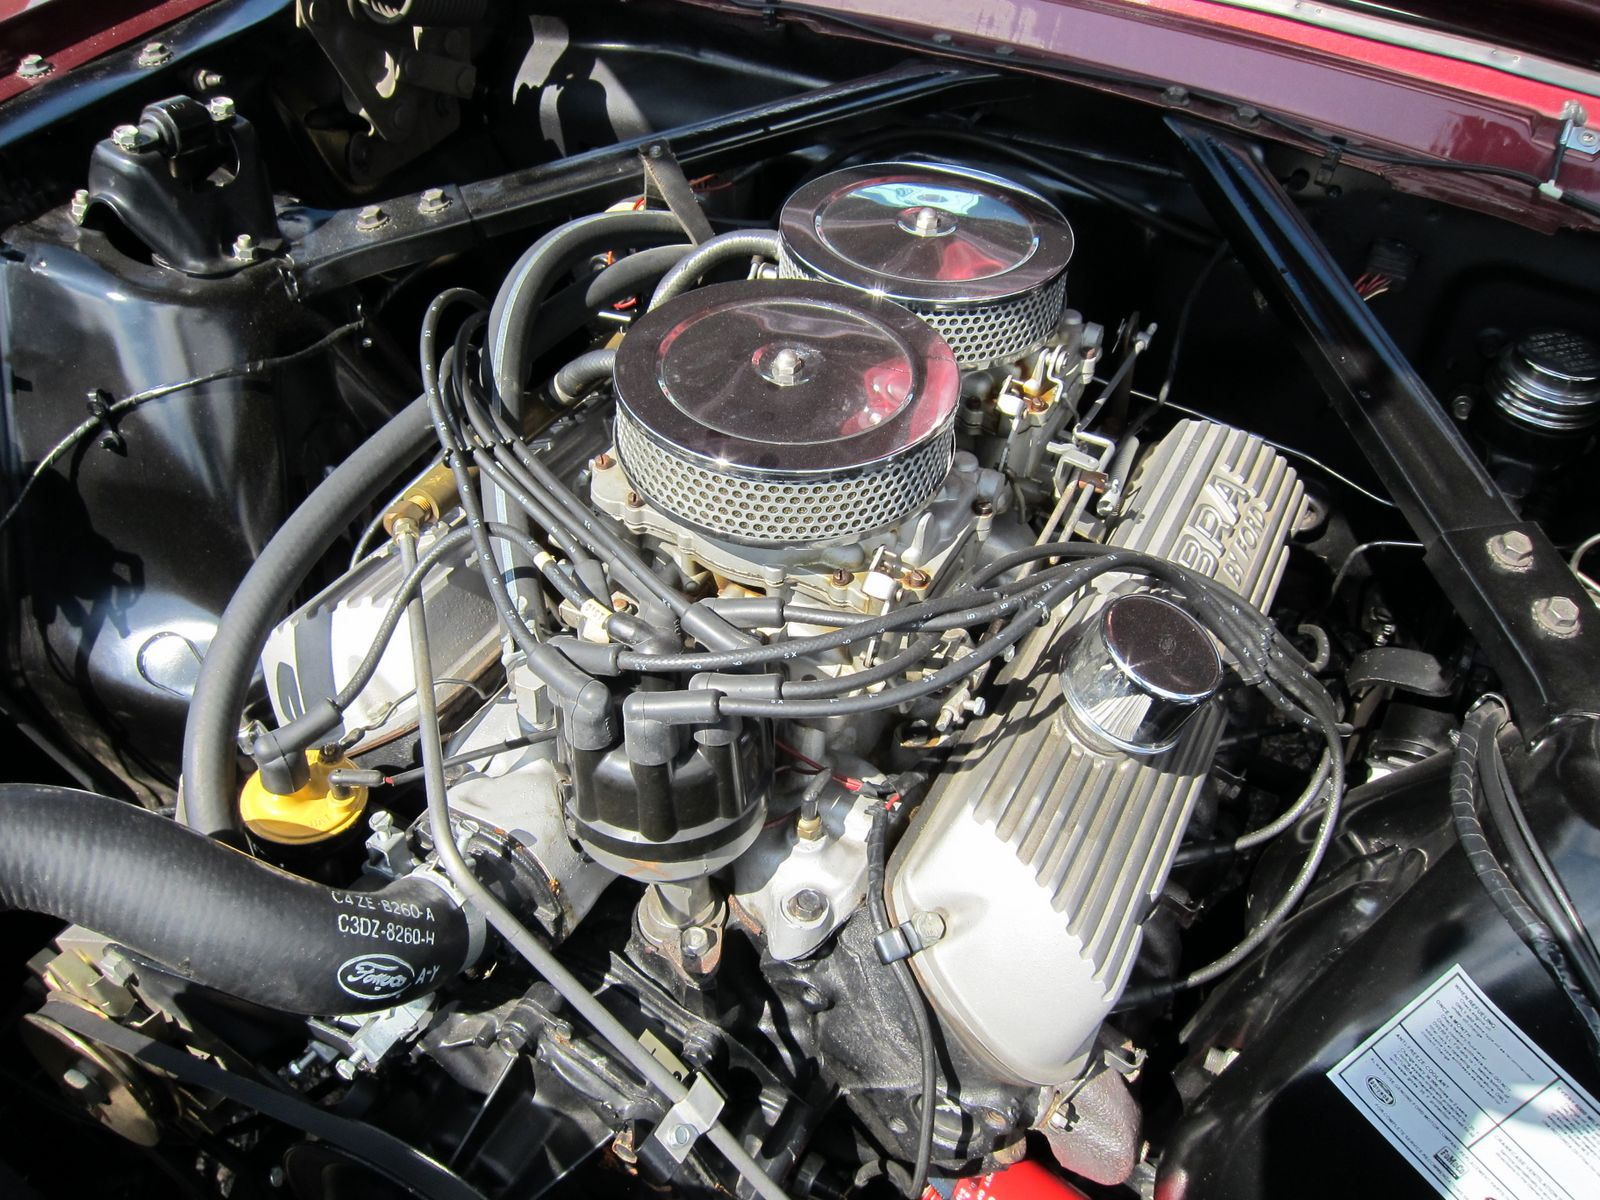 Installing a Hose Wizard air conditioning system on our tired 1990 Ford Mustang project car - Muscle Mustangs & Fast Fords Magazine